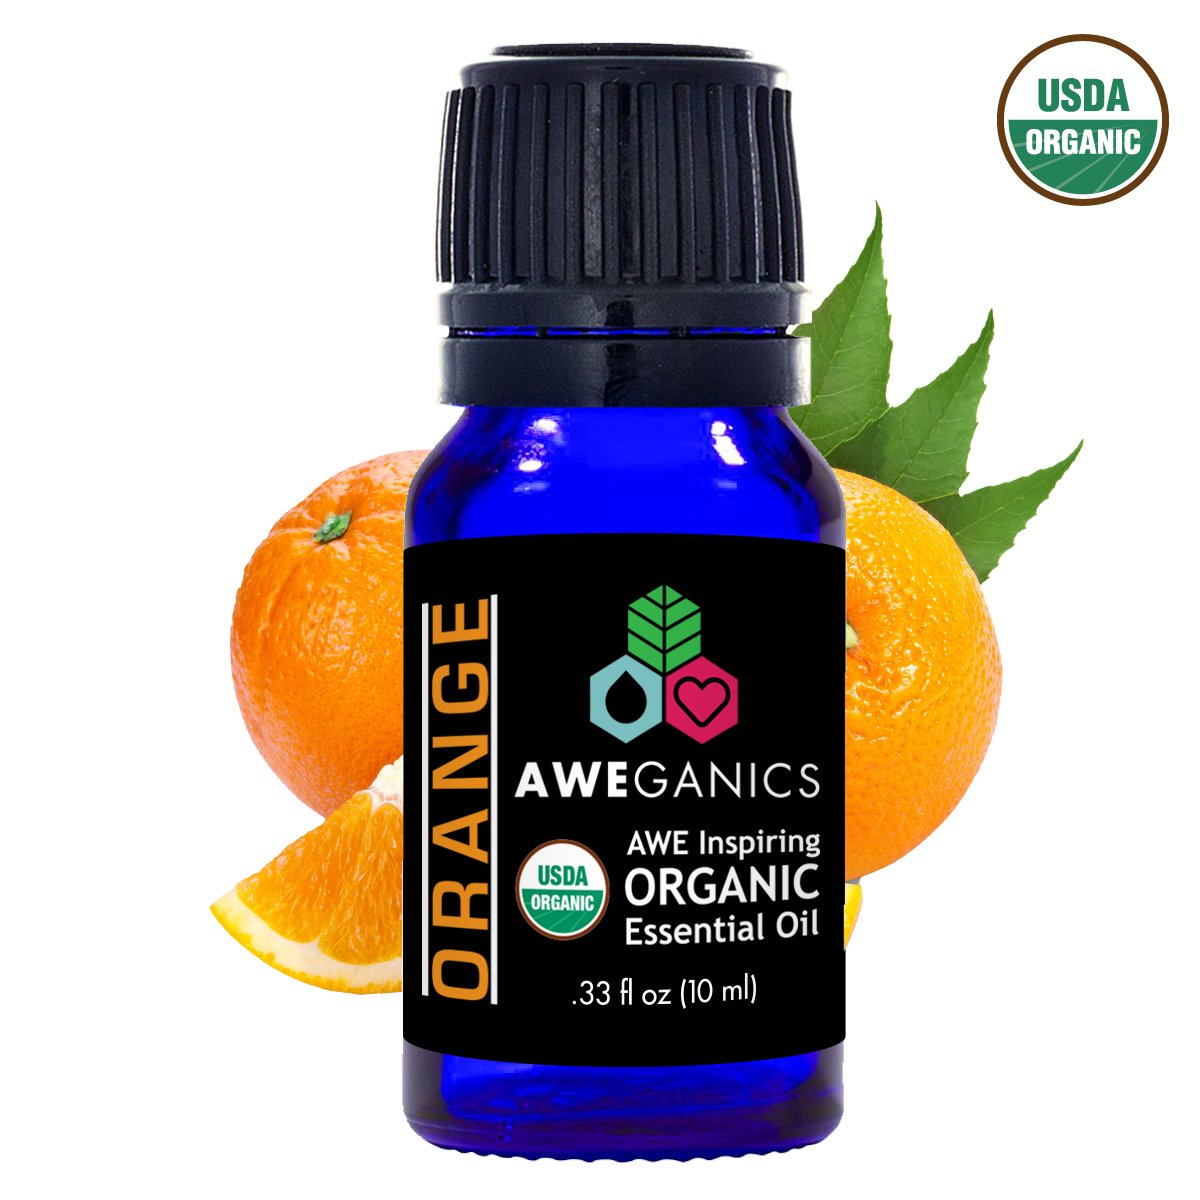 Aweganics Pure Orange Oil USDA Organic Essential Oils, 100% Pure Natural Premium Therapeutic Grade, Best Aromatherapy Scented-Oils for Diffuser, Home, Office, Women, Men - 10 ML - MSRP $14.99